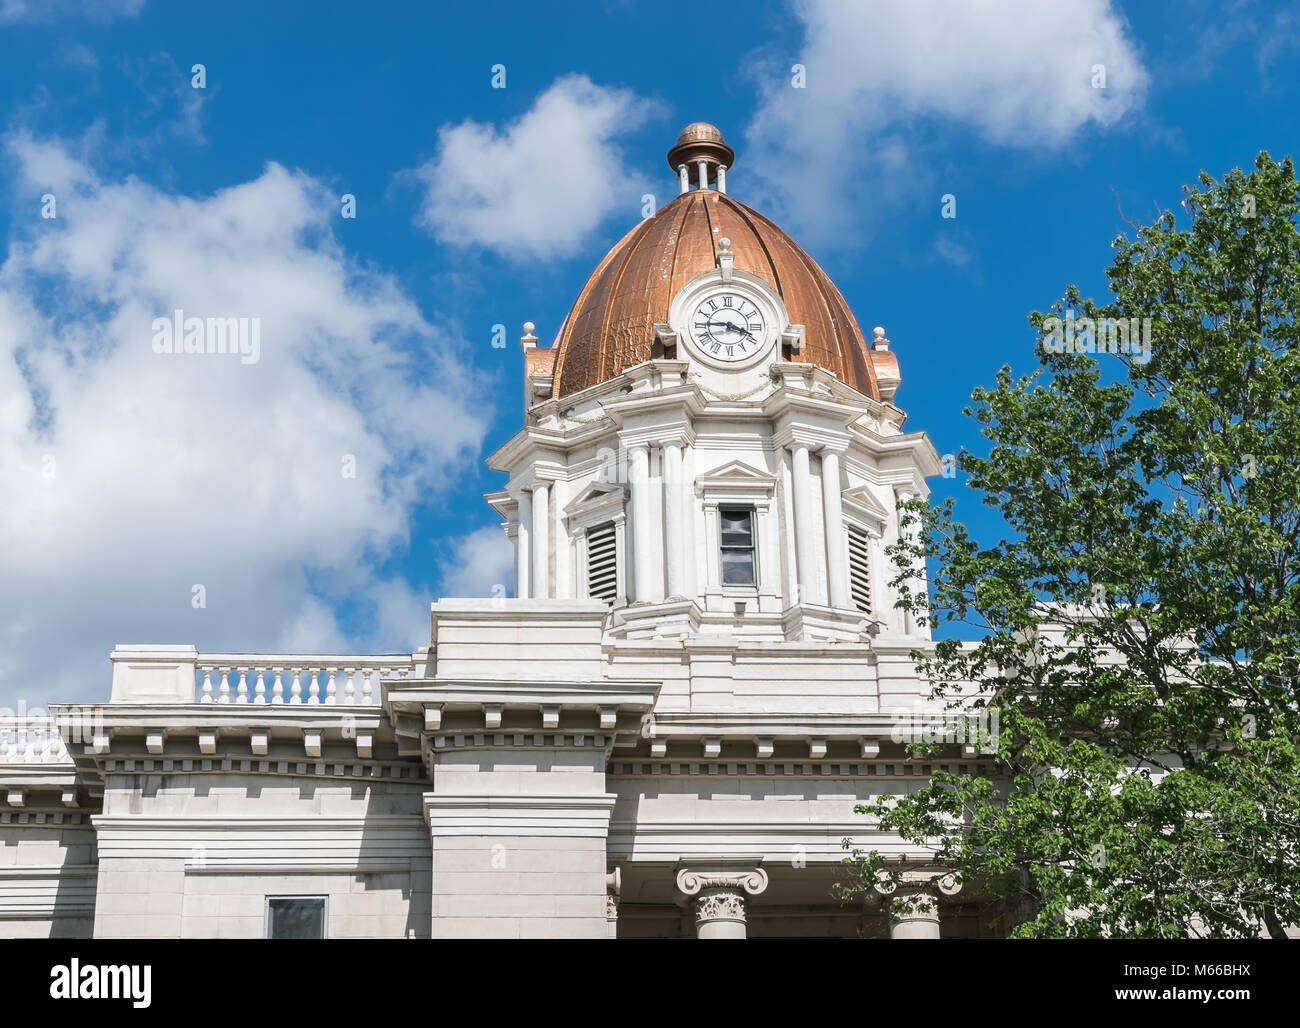 The Lee County, Mississippi Courthouse. - Stock Image